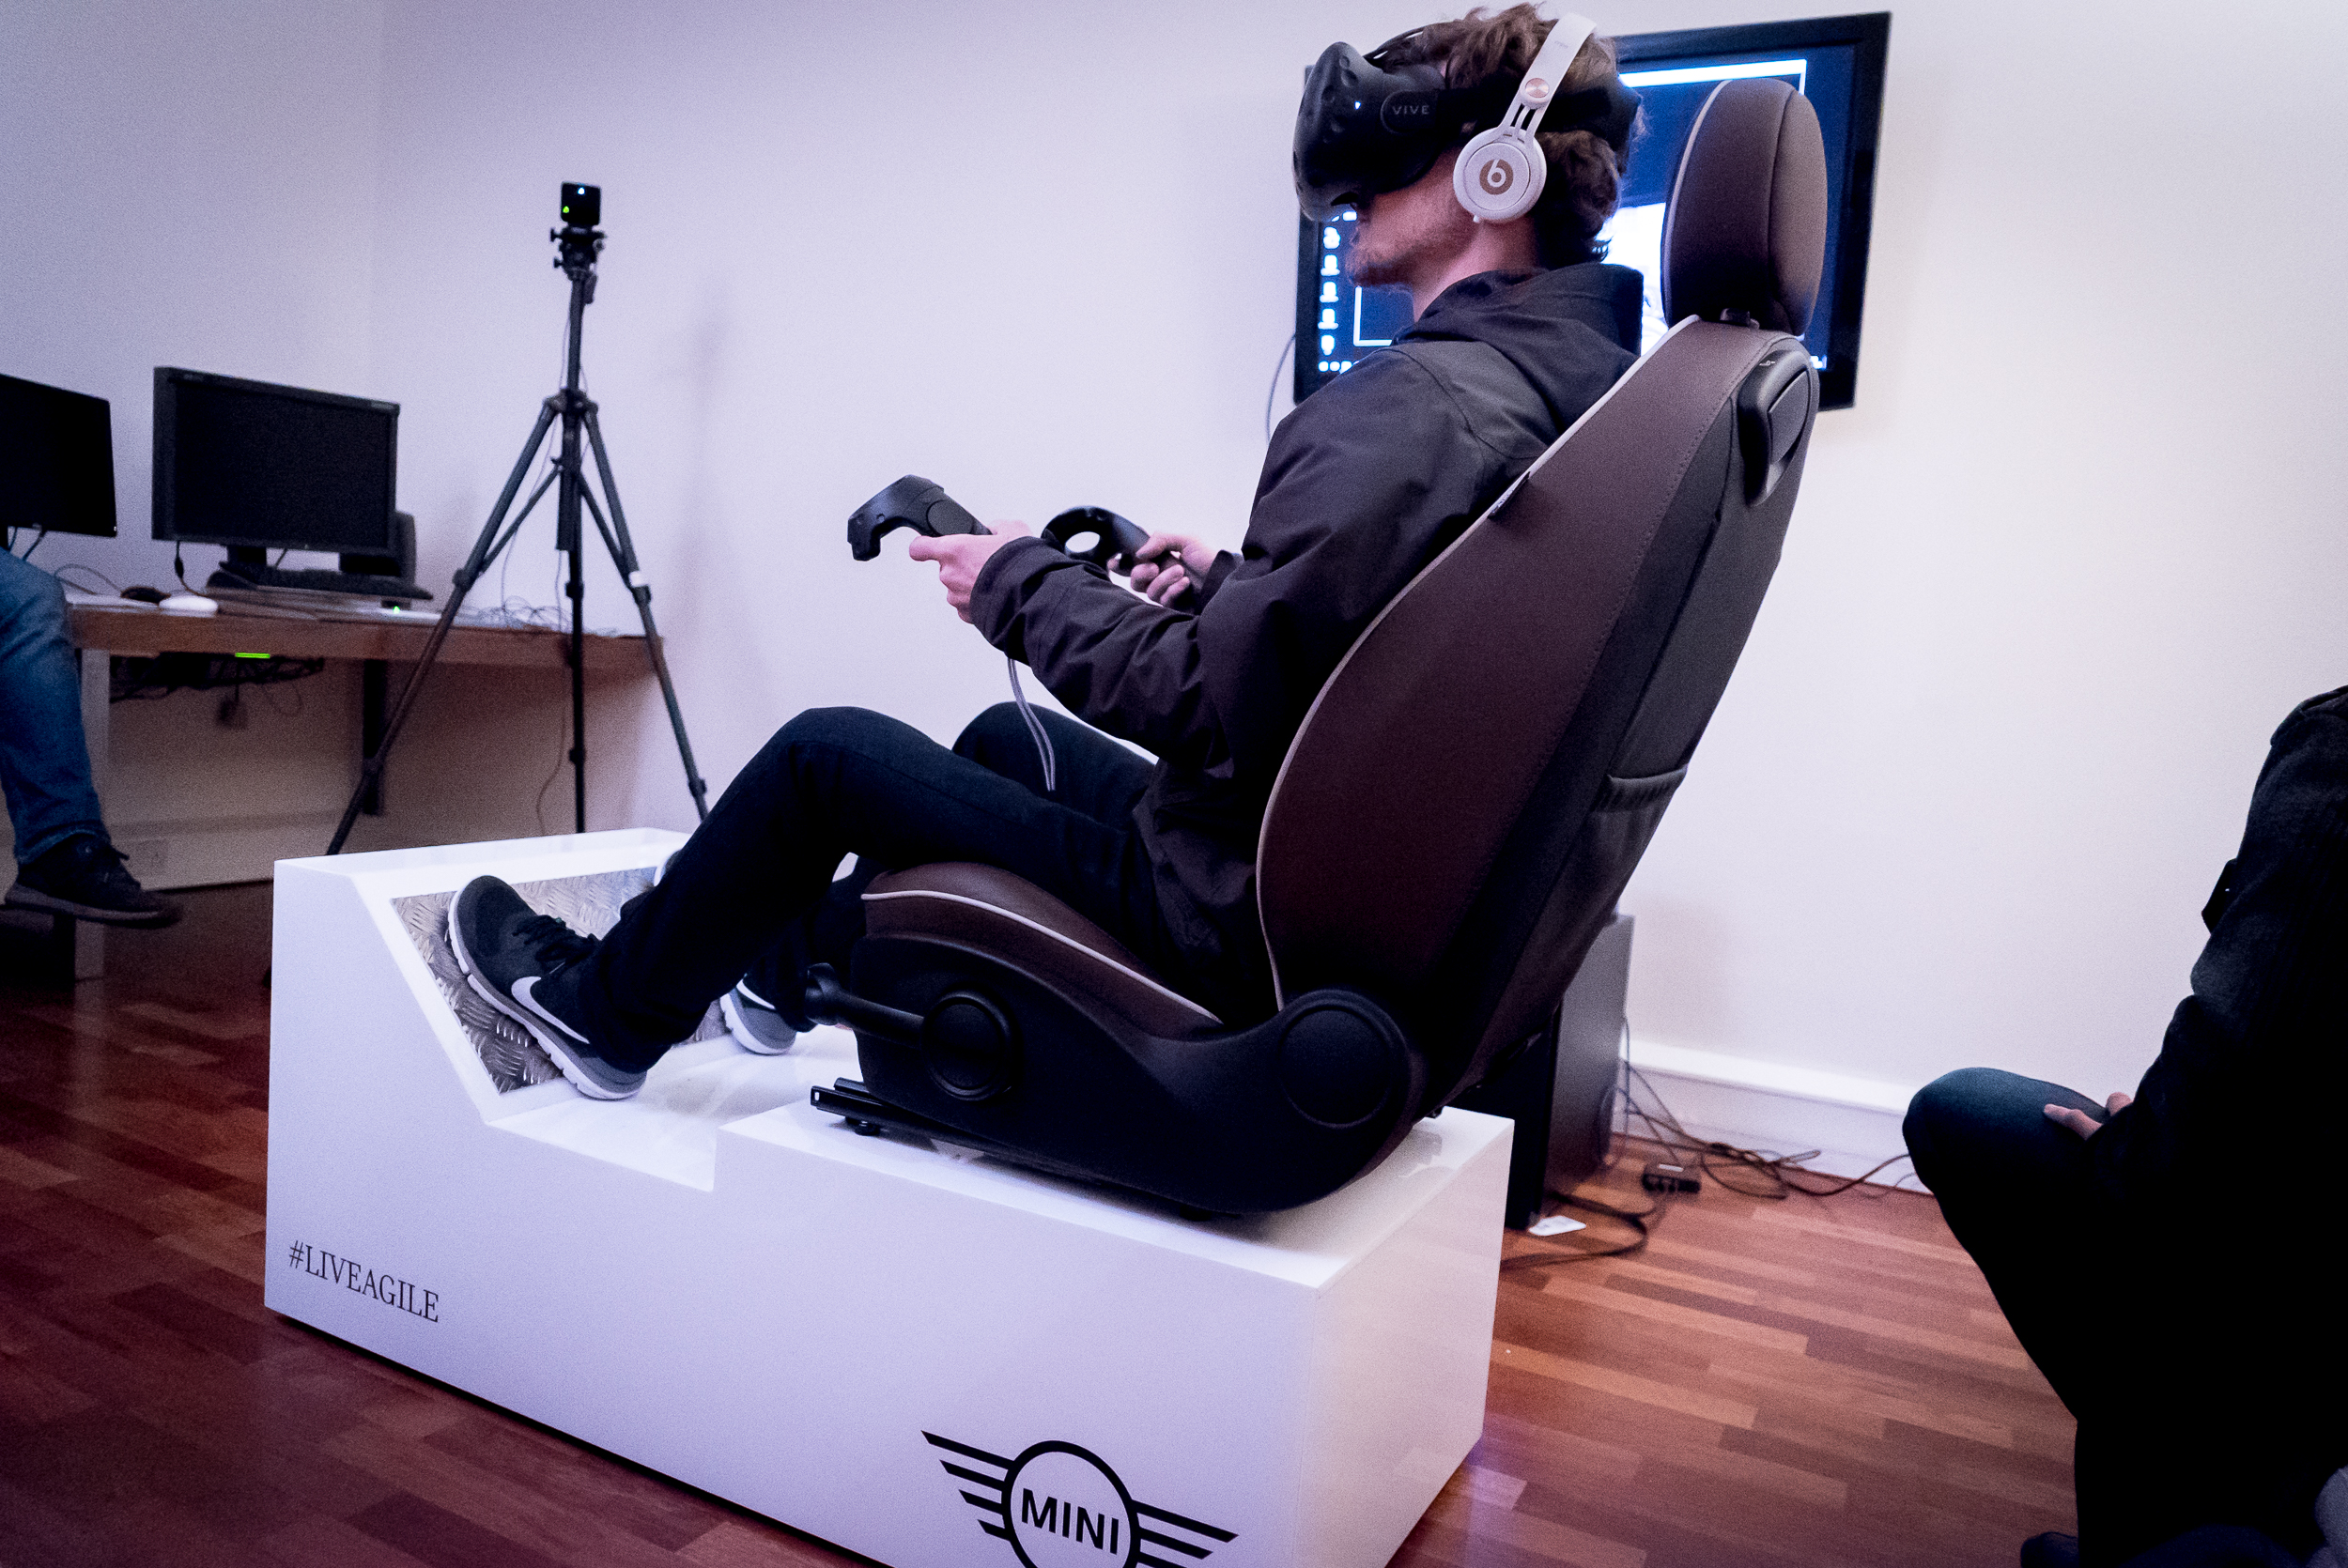 Framestore created a Mini test drive experience on the HTC Vive, complete with vibrating chair.